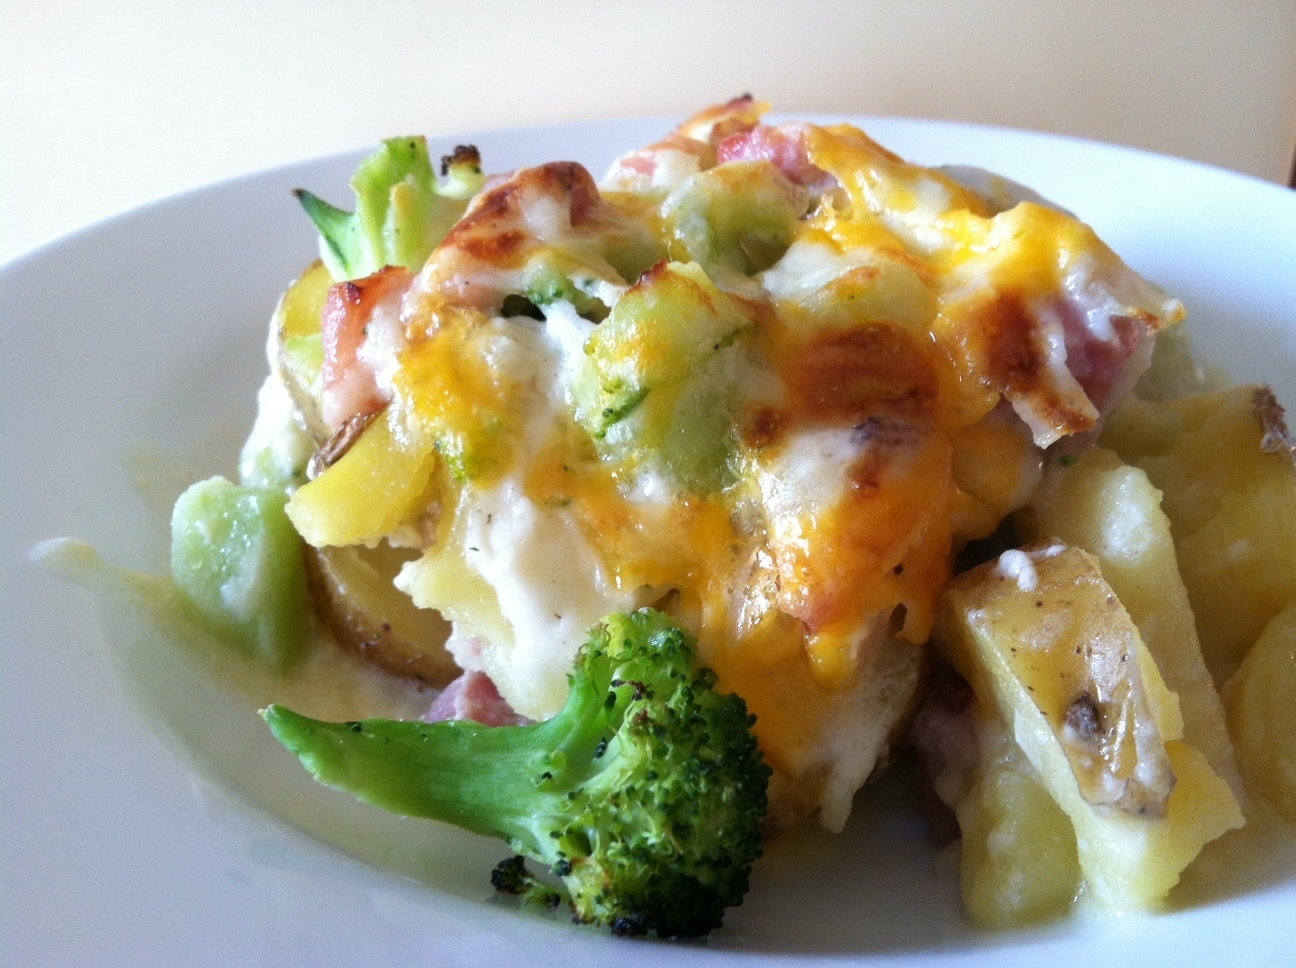 Scalloped Ham, Potato and Broccoli